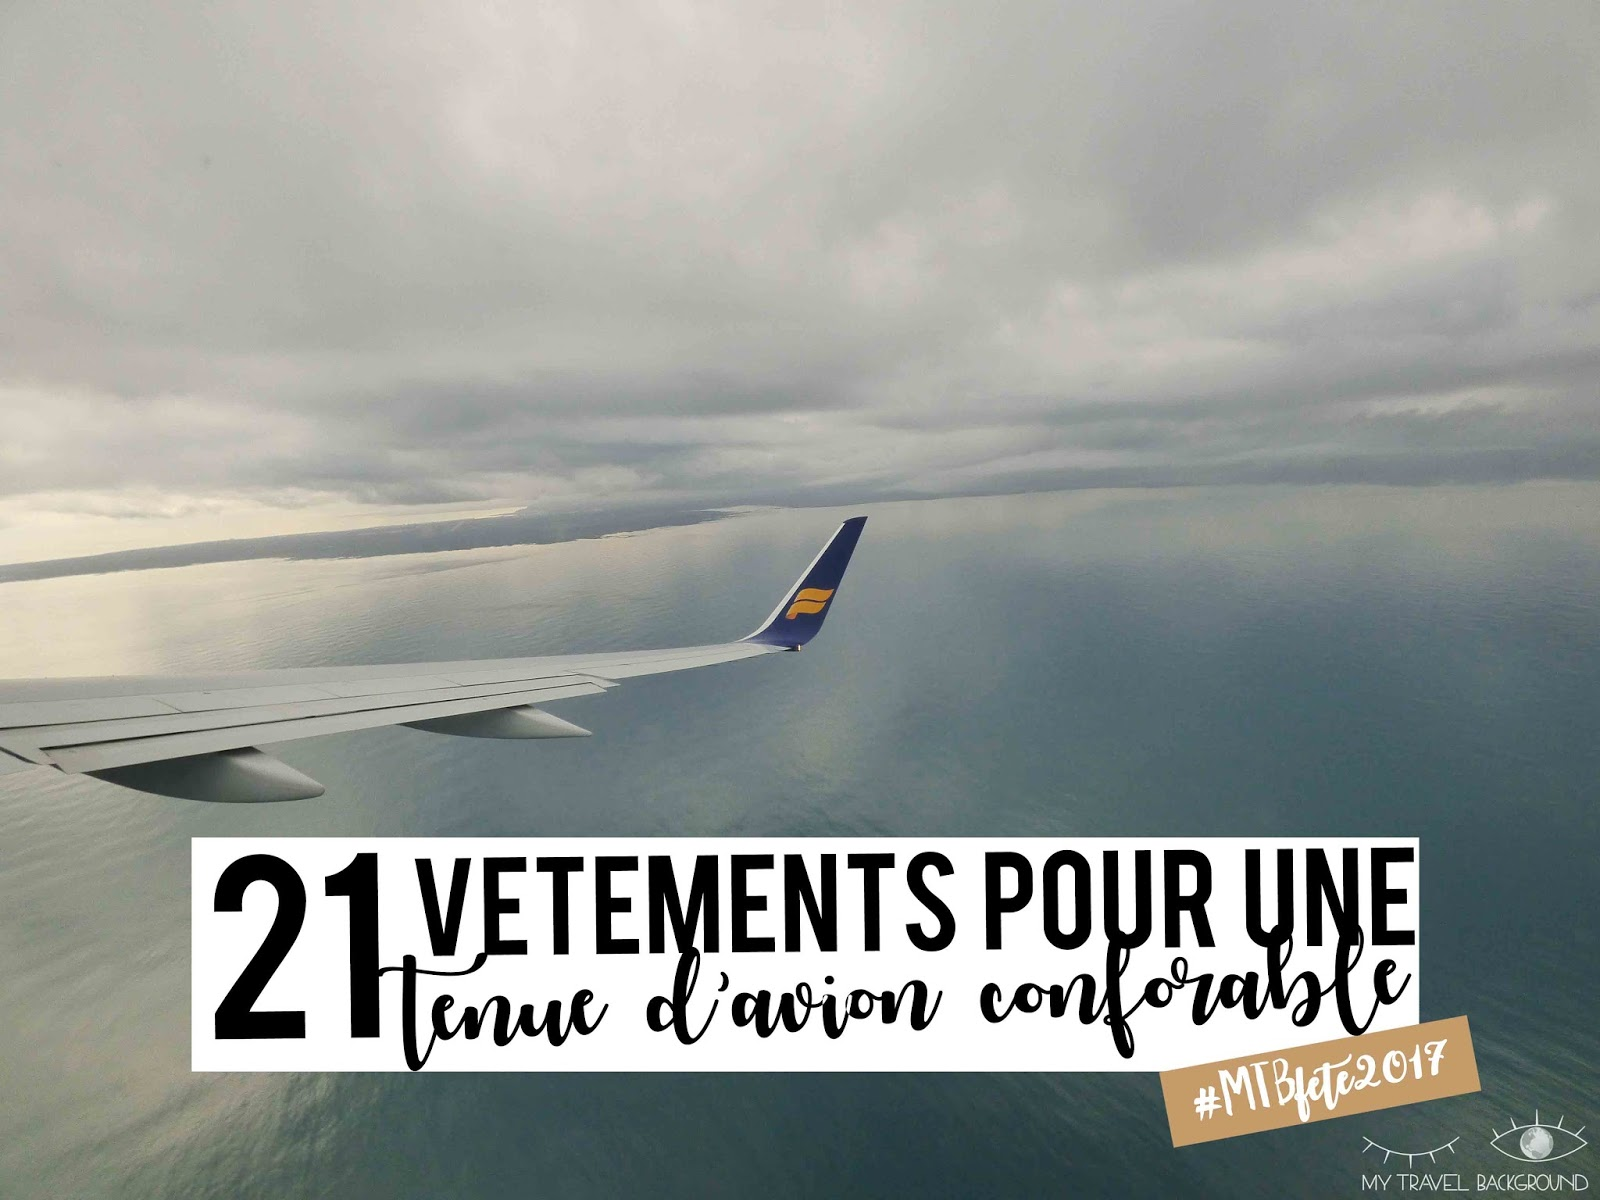 My Travel Background : 21 idées de vêtements pour une tenue de voyage confortable en avion